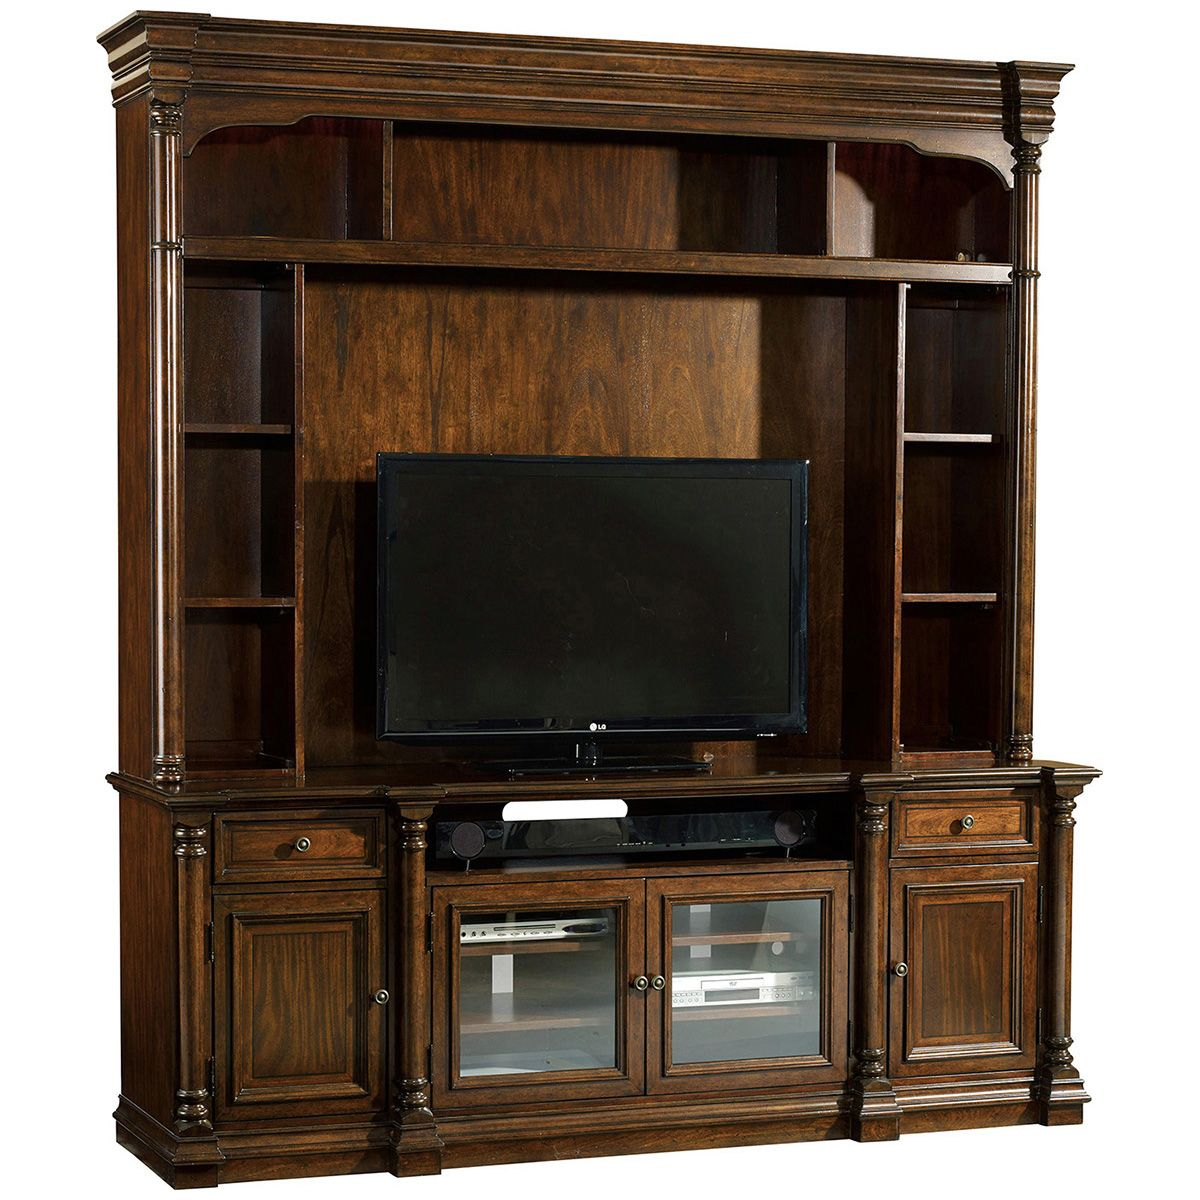 Hooker furniture leesburg wood pc entertainment group